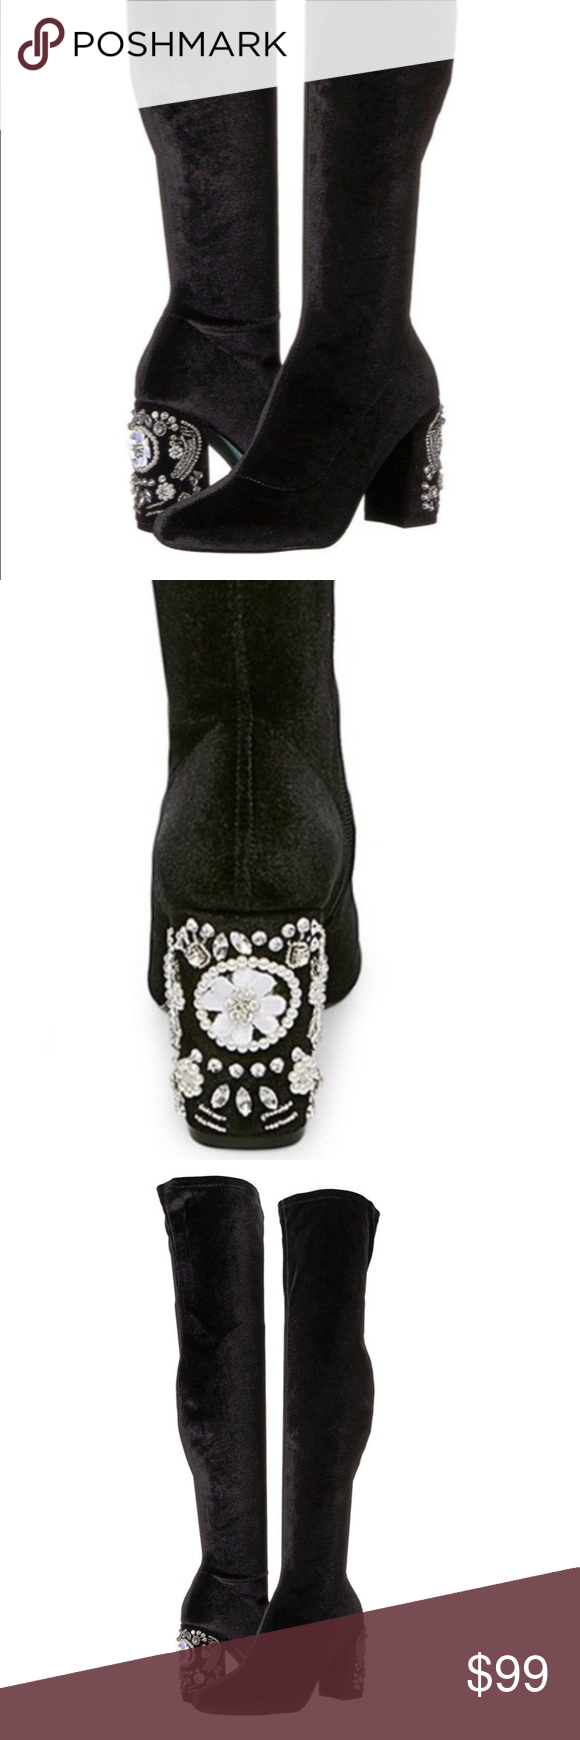 65ff14ac888 NIB Blue by Betsey Johnson Giselle otk boots Gorgeous velvet over the knee  boots with jeweled heel from Betsey Johnson. Betsey Johnson Shoes Over the  Knee ...